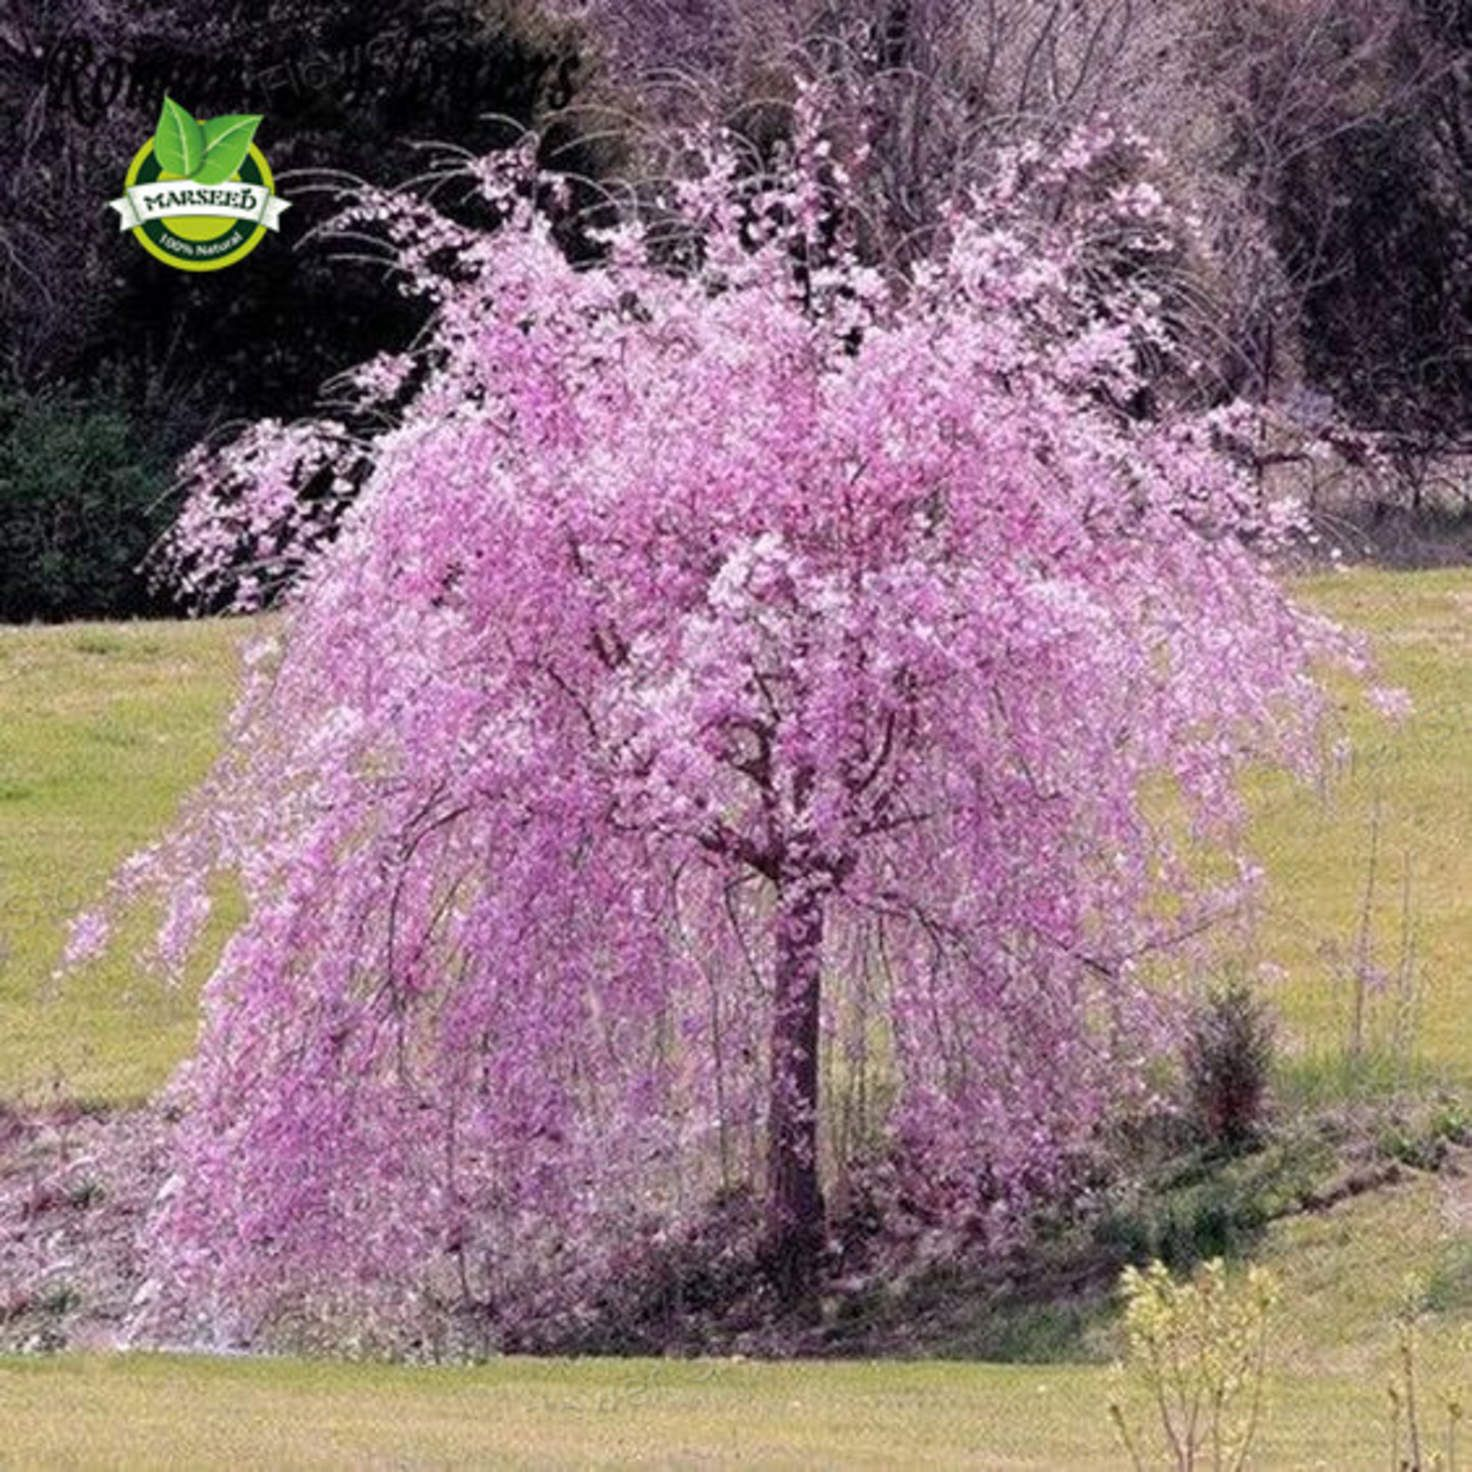 Pin By Lecy Mendonca On Landscaping Decor Ideas Trees To Plant Garden Trees Weeping Cherry Tree